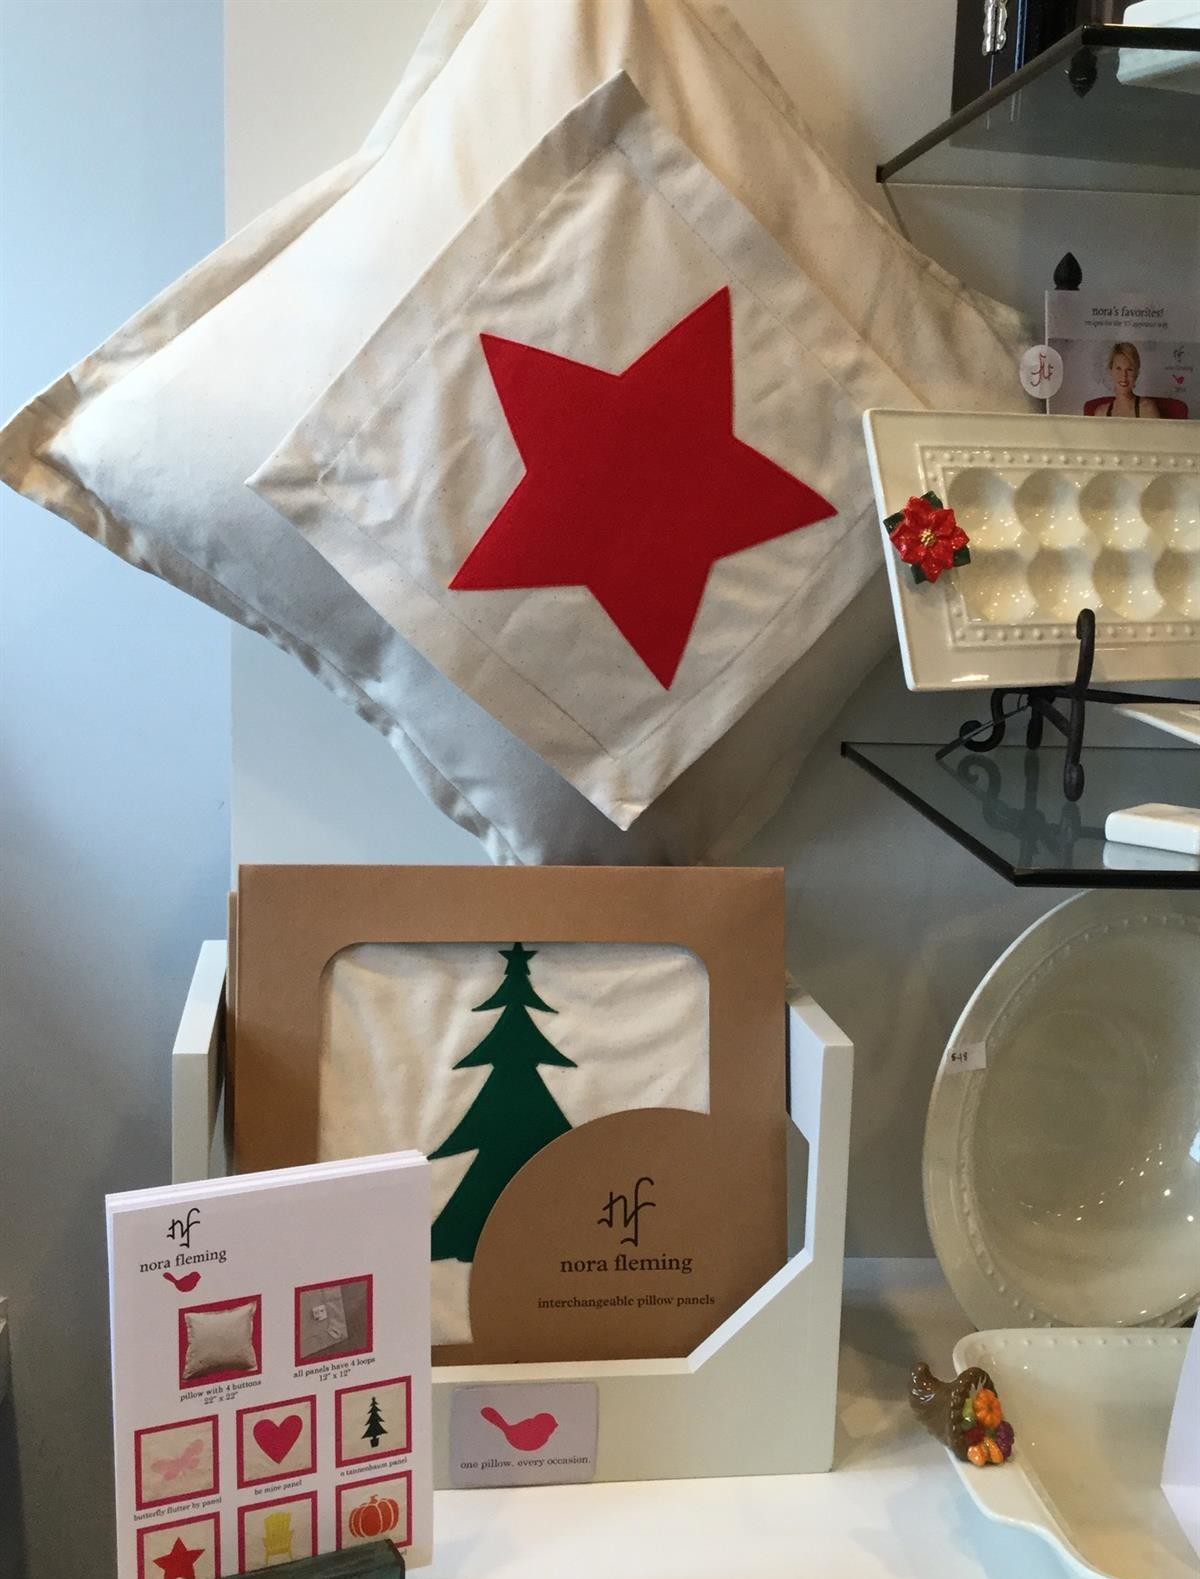 Nora_Fleming_Pillows_Toppers_Pumpkin_Christmas_Tree_Star